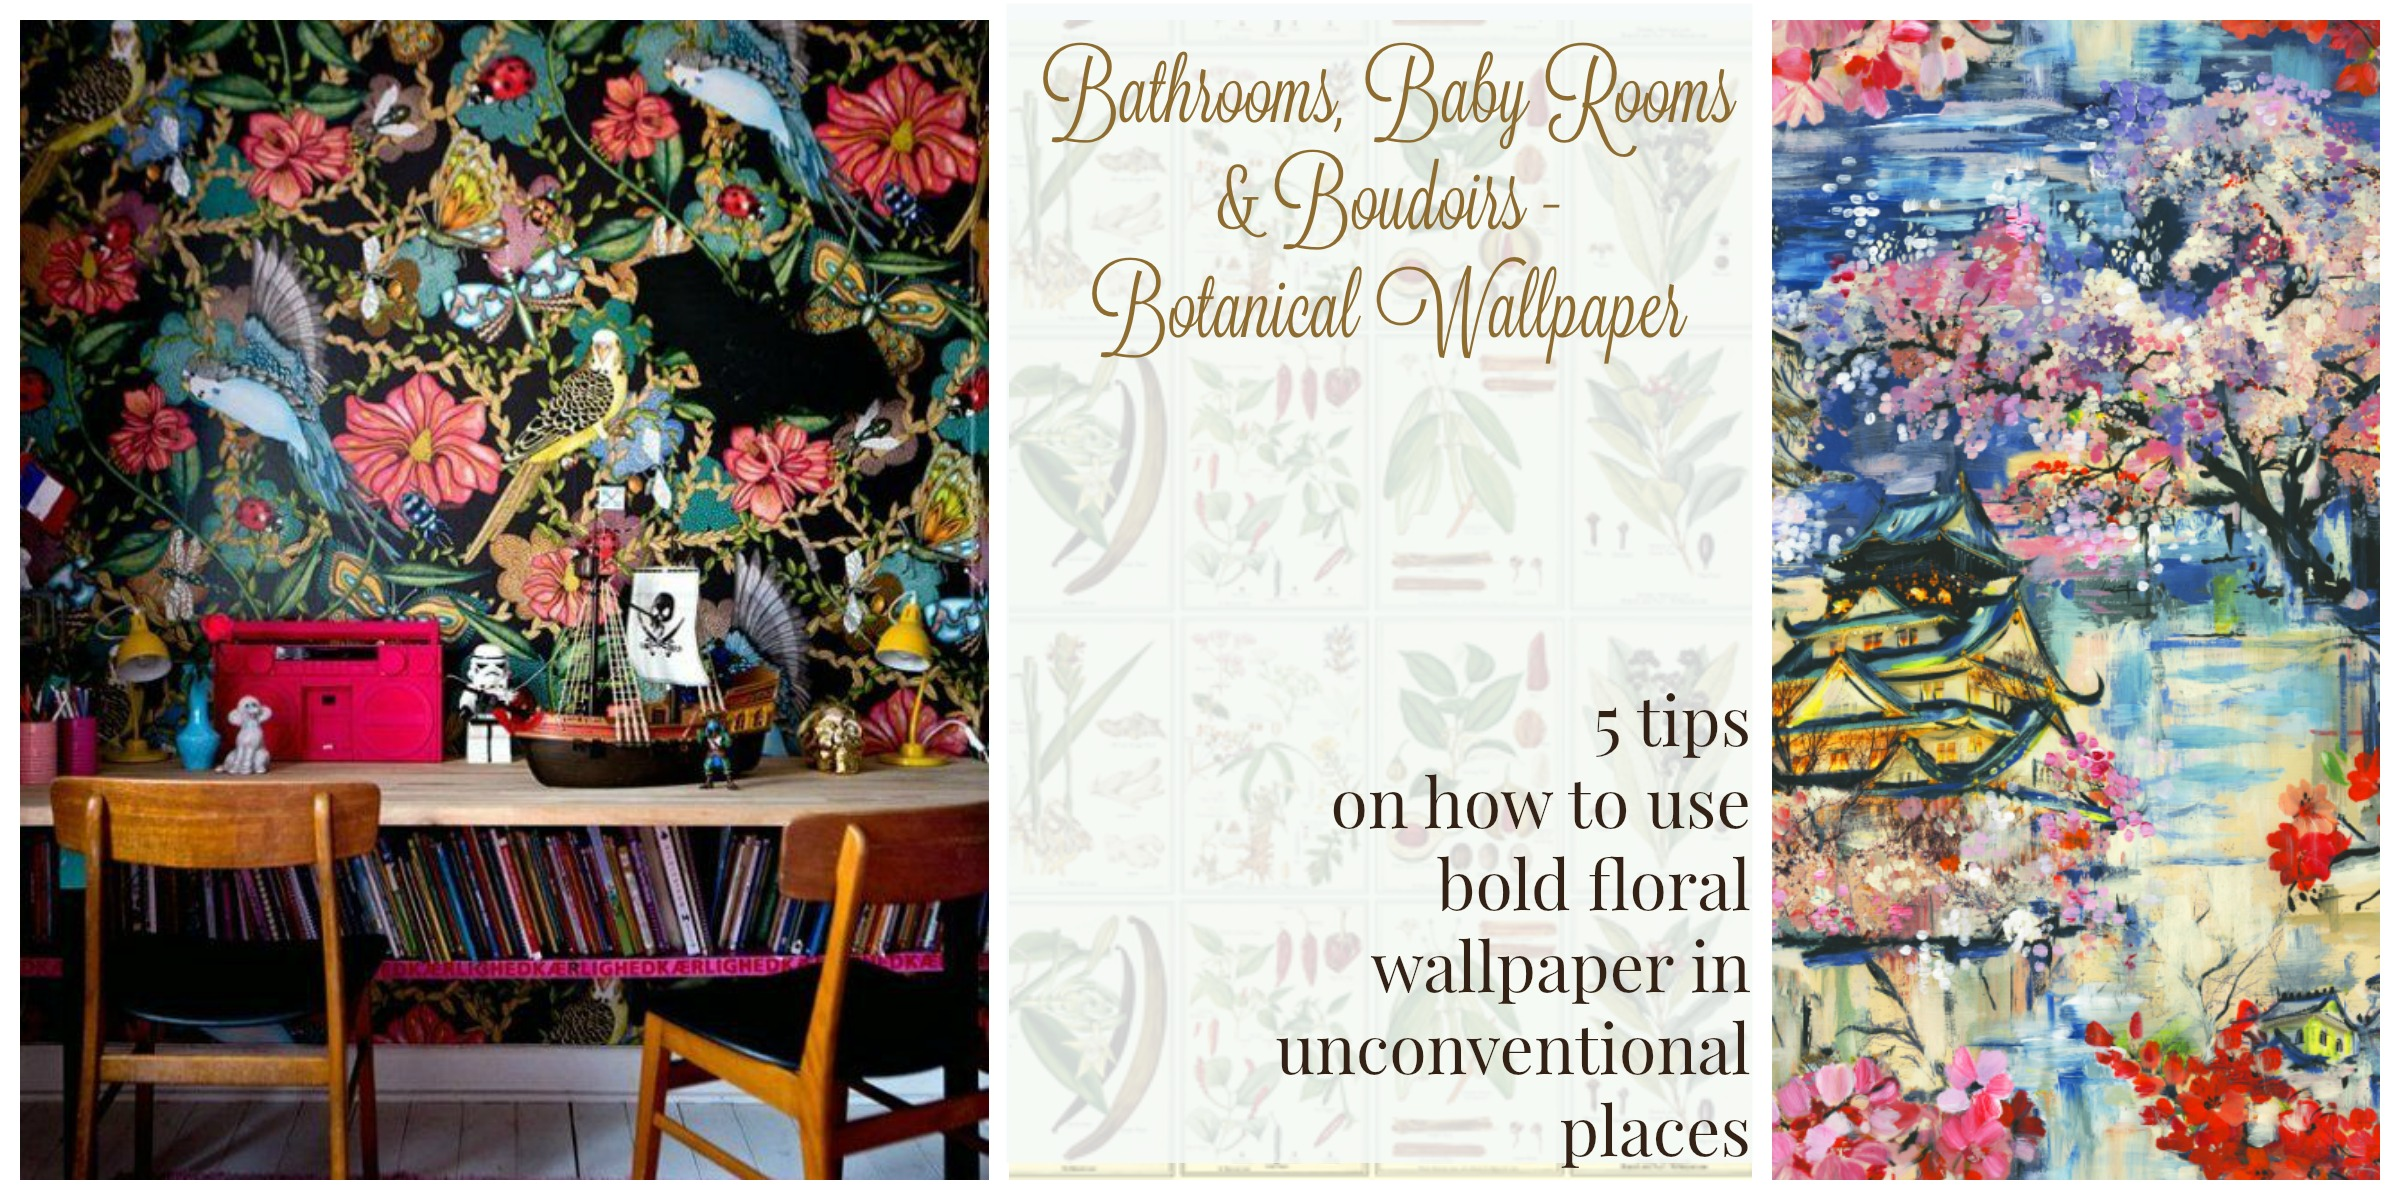 Botanical and floral wallpaper used in bathrooms, baby rooms and boudoirs